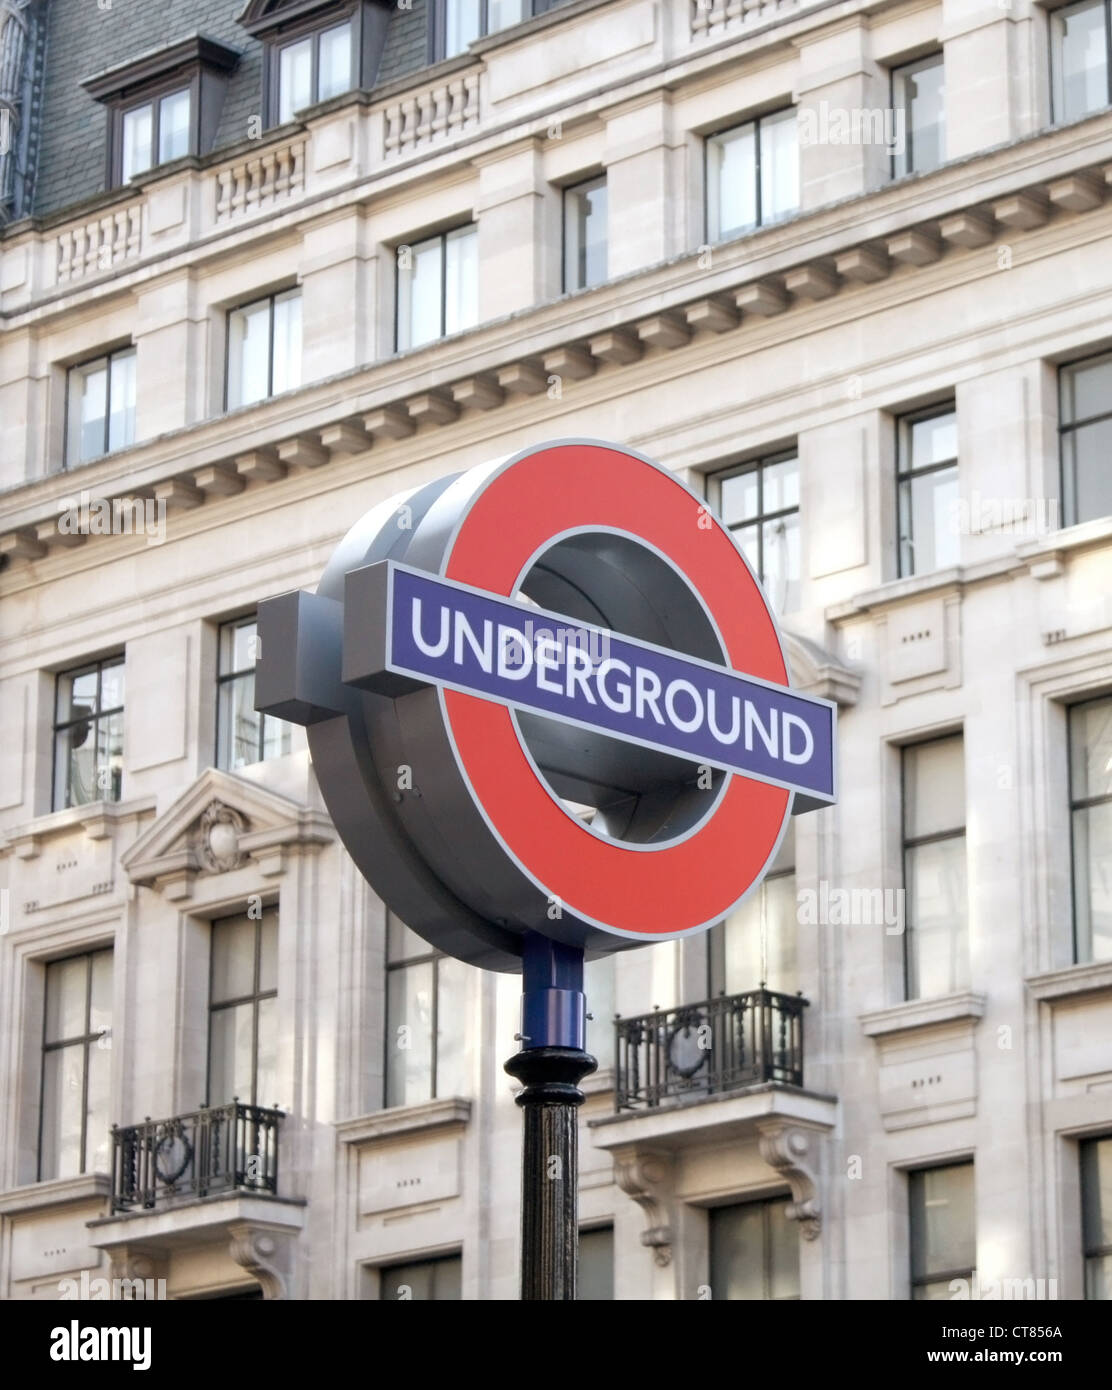 london underground - Stock Image